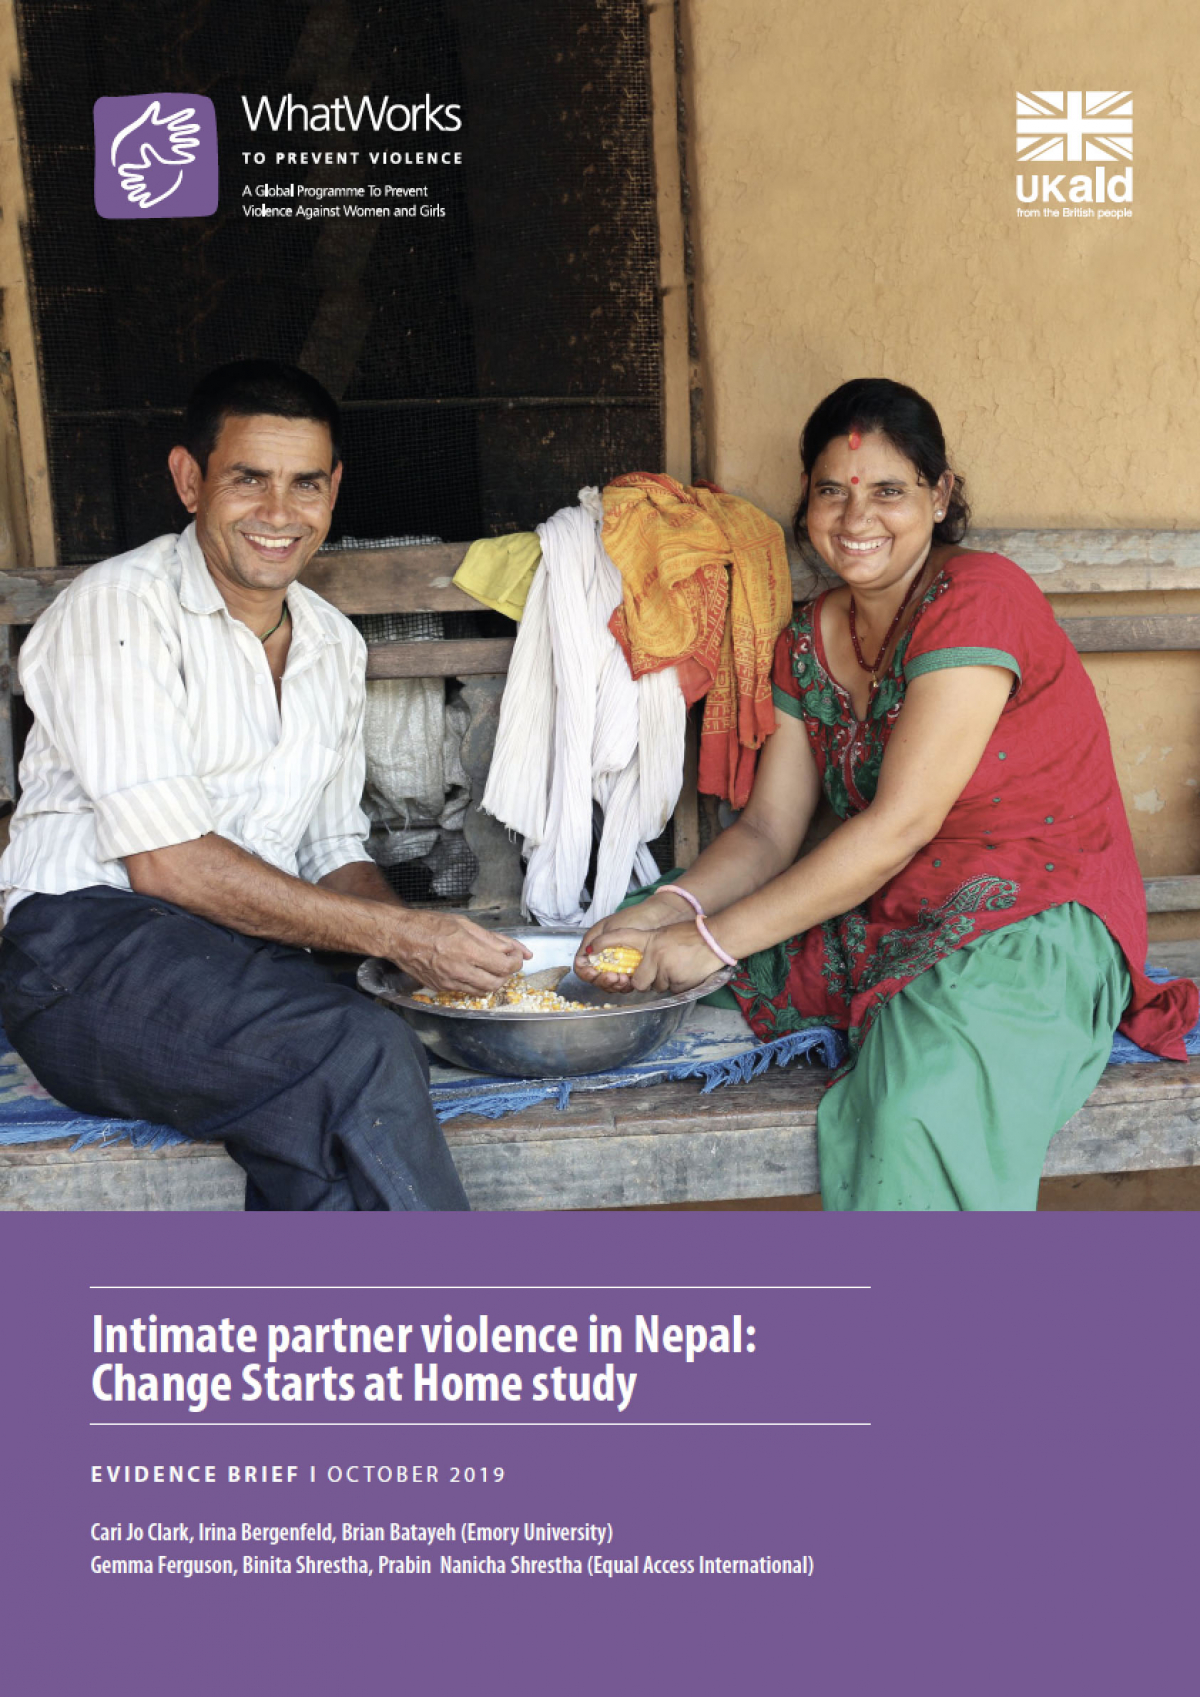 Intimate partner violence in Nepal: Change Starts at Home study